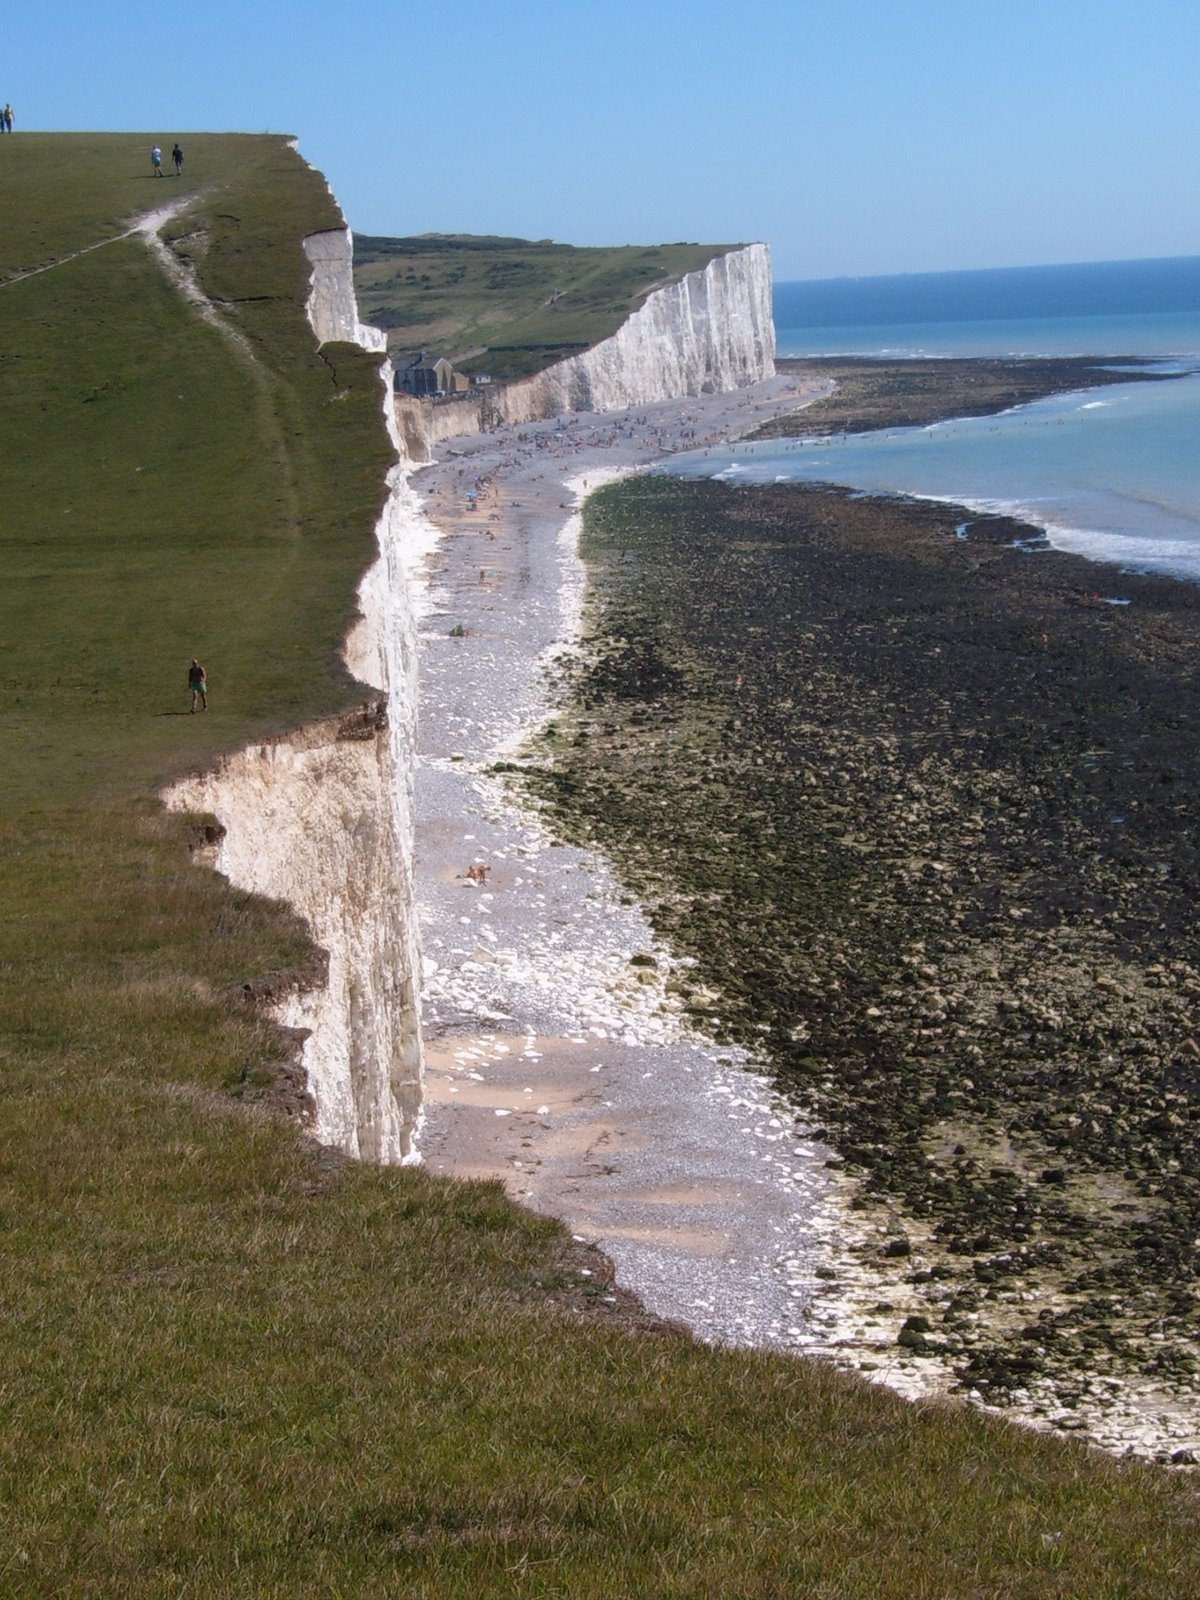 Shingle Beach below cliffs